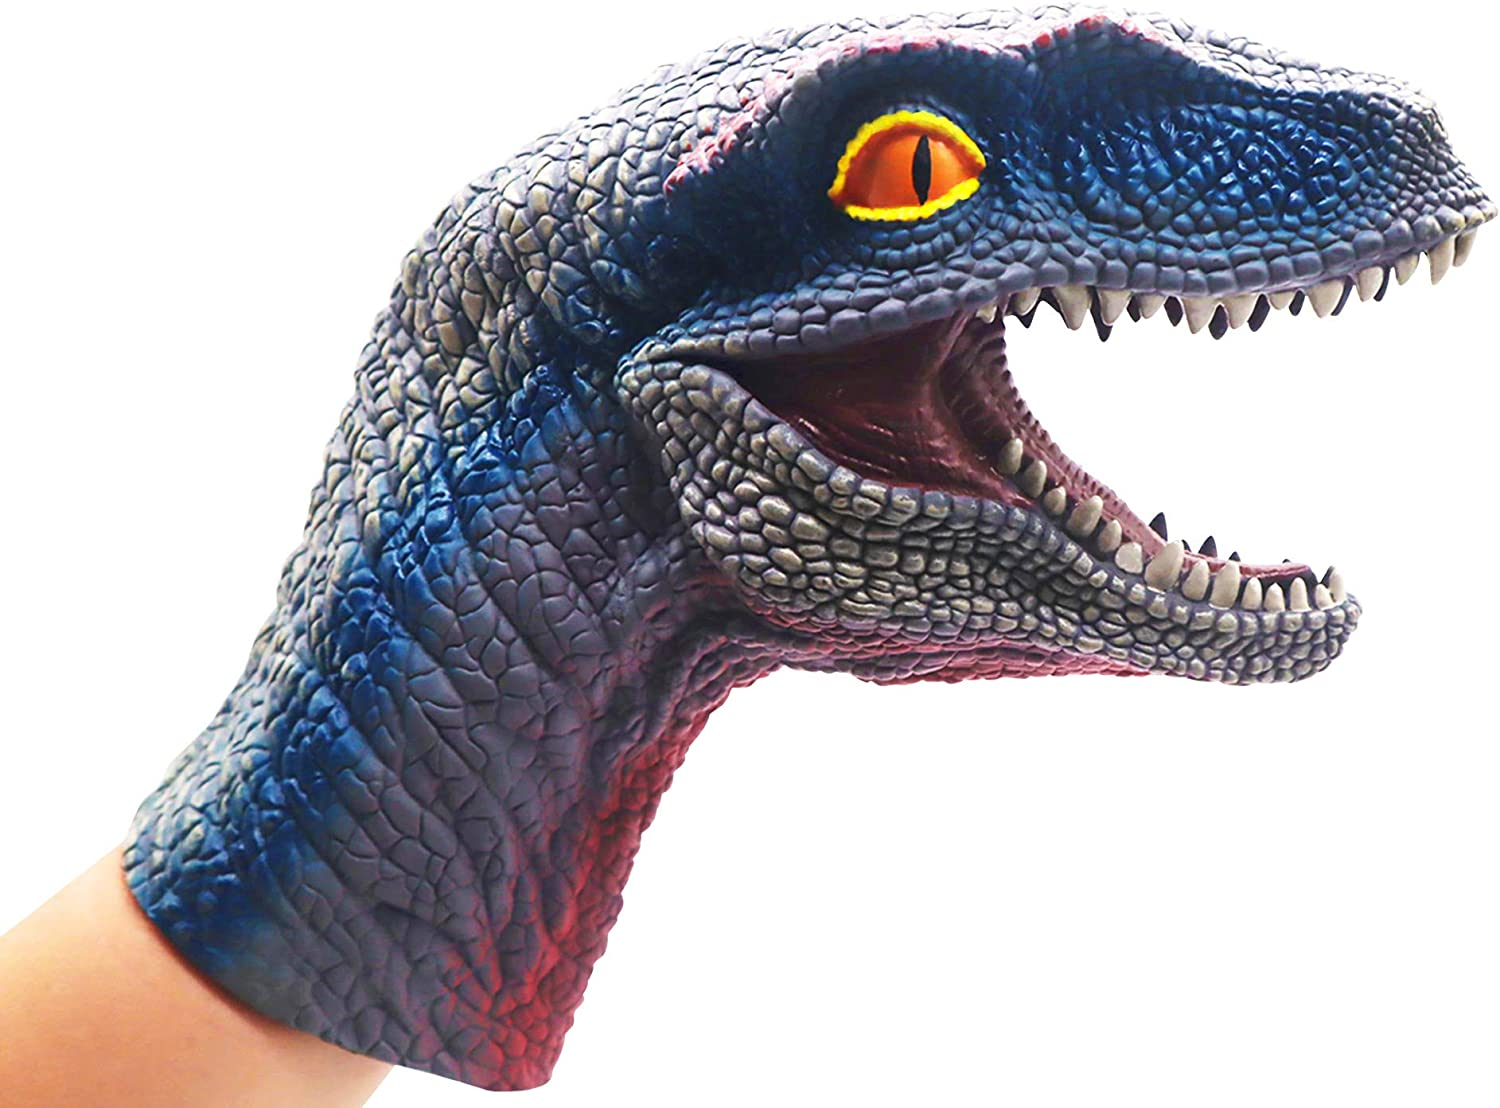 upour-Velociraptor Soft Hand Puppet,Animal Gloves,Dinosaur Kids Toys,Child Birthday Present for 3 Years Old